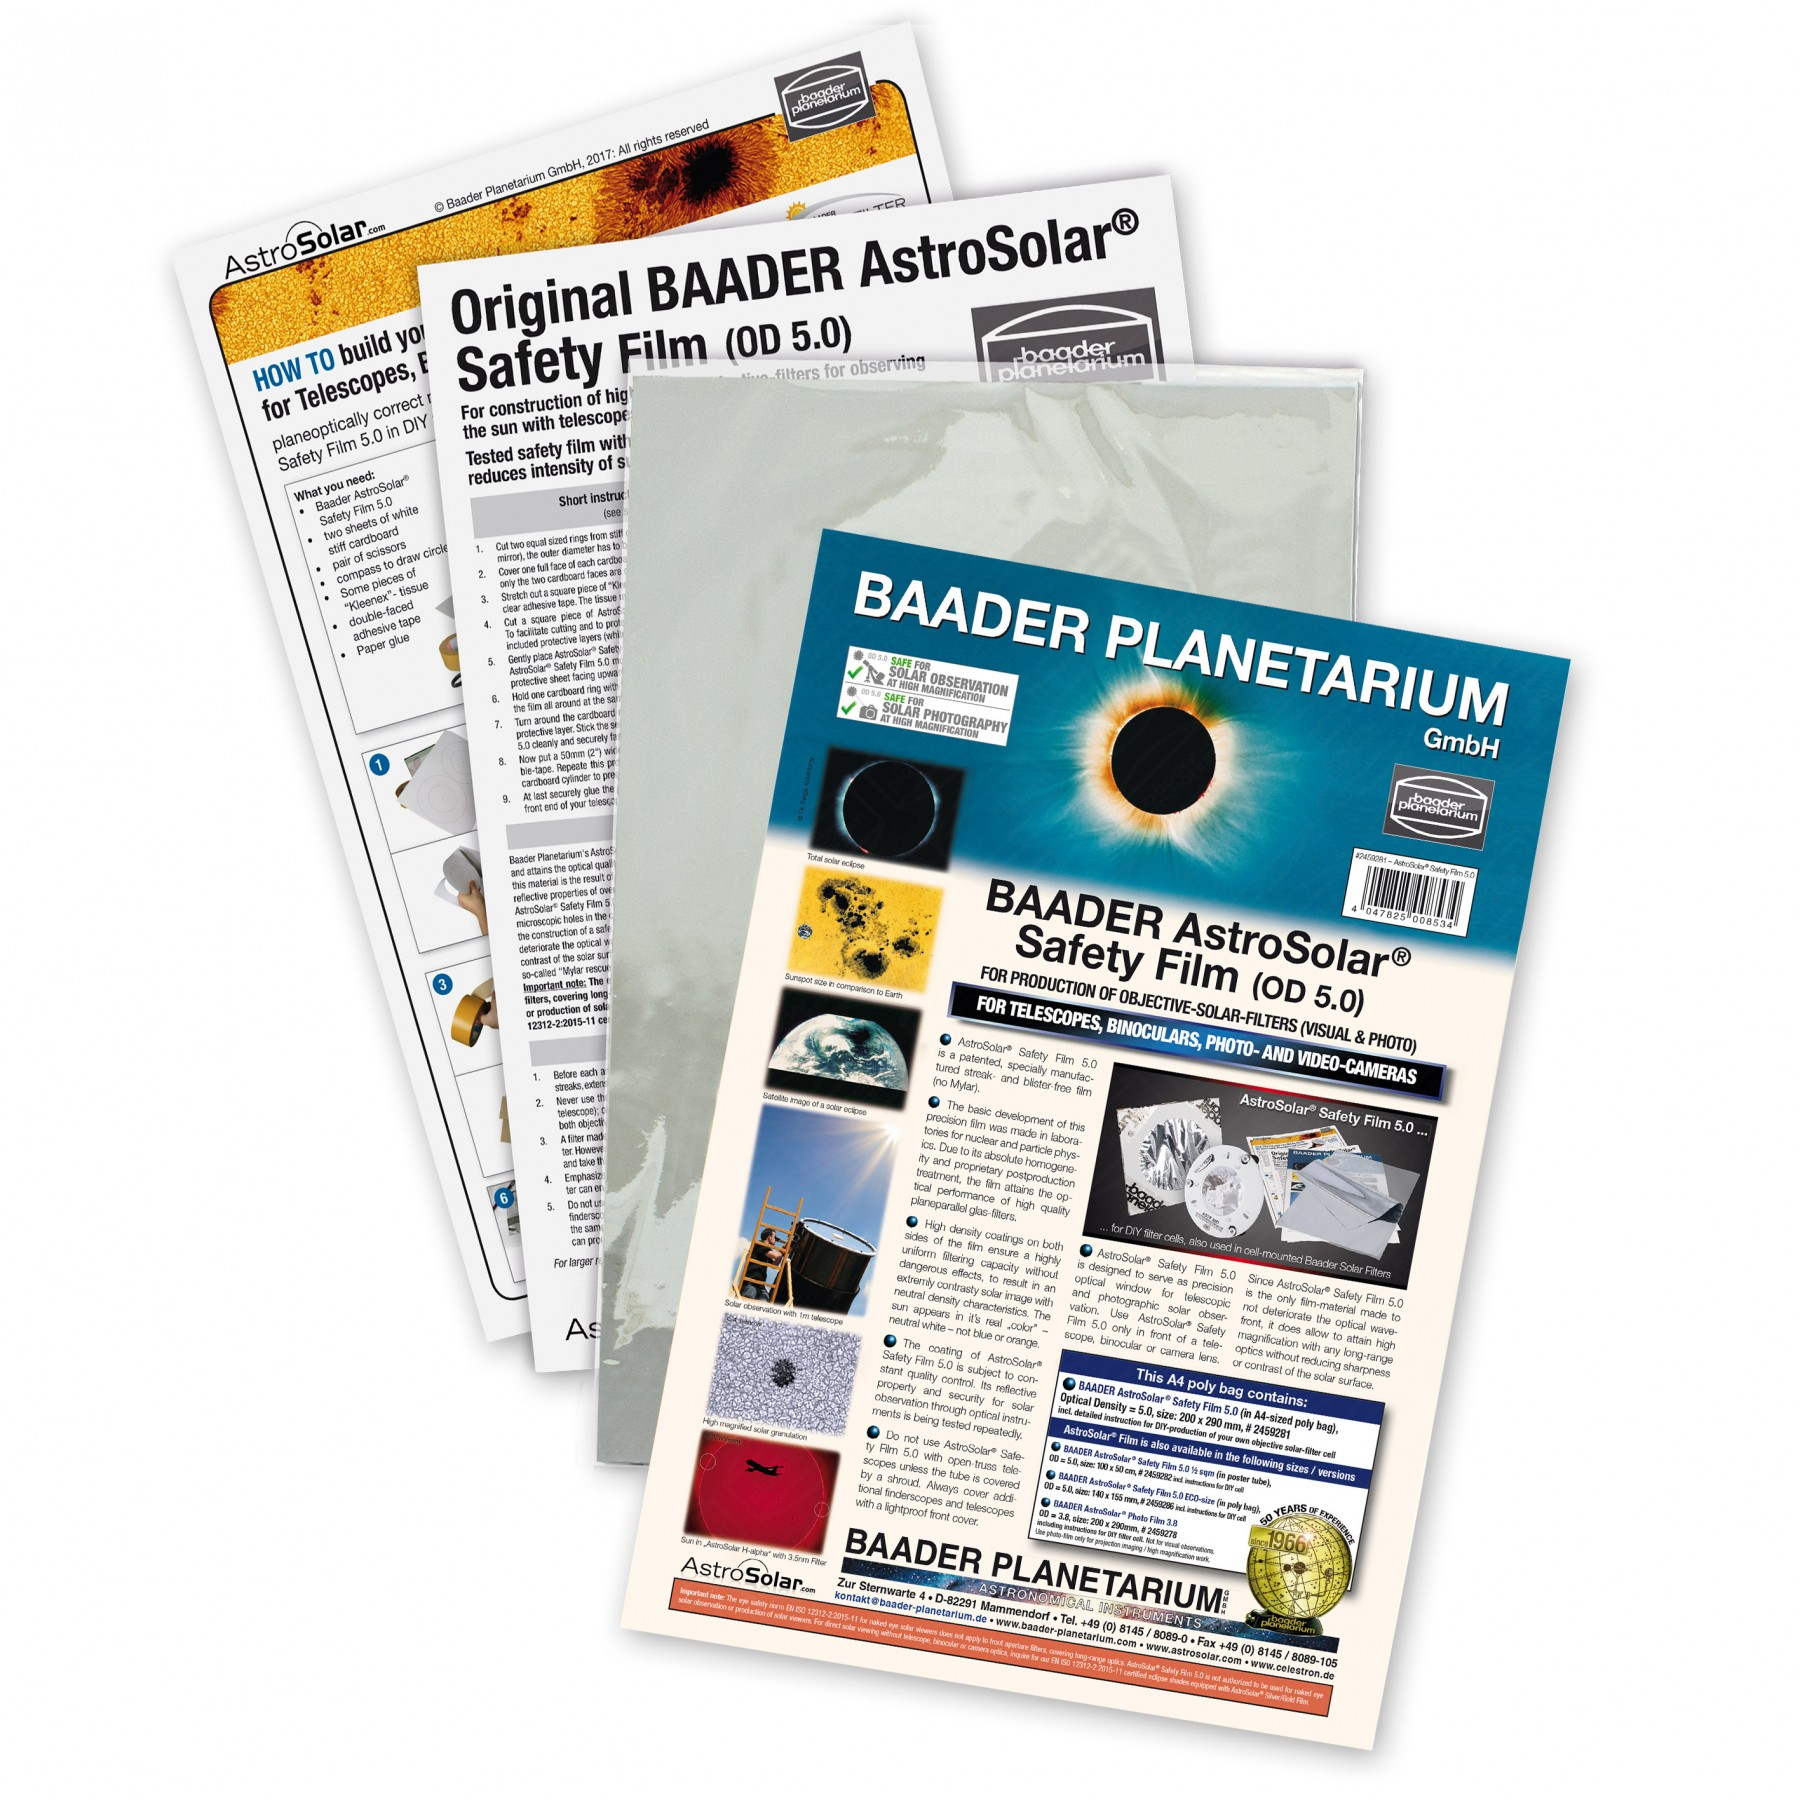 Baader AstroSolar Safety Film OD 5.0 - 20 x 29 cm